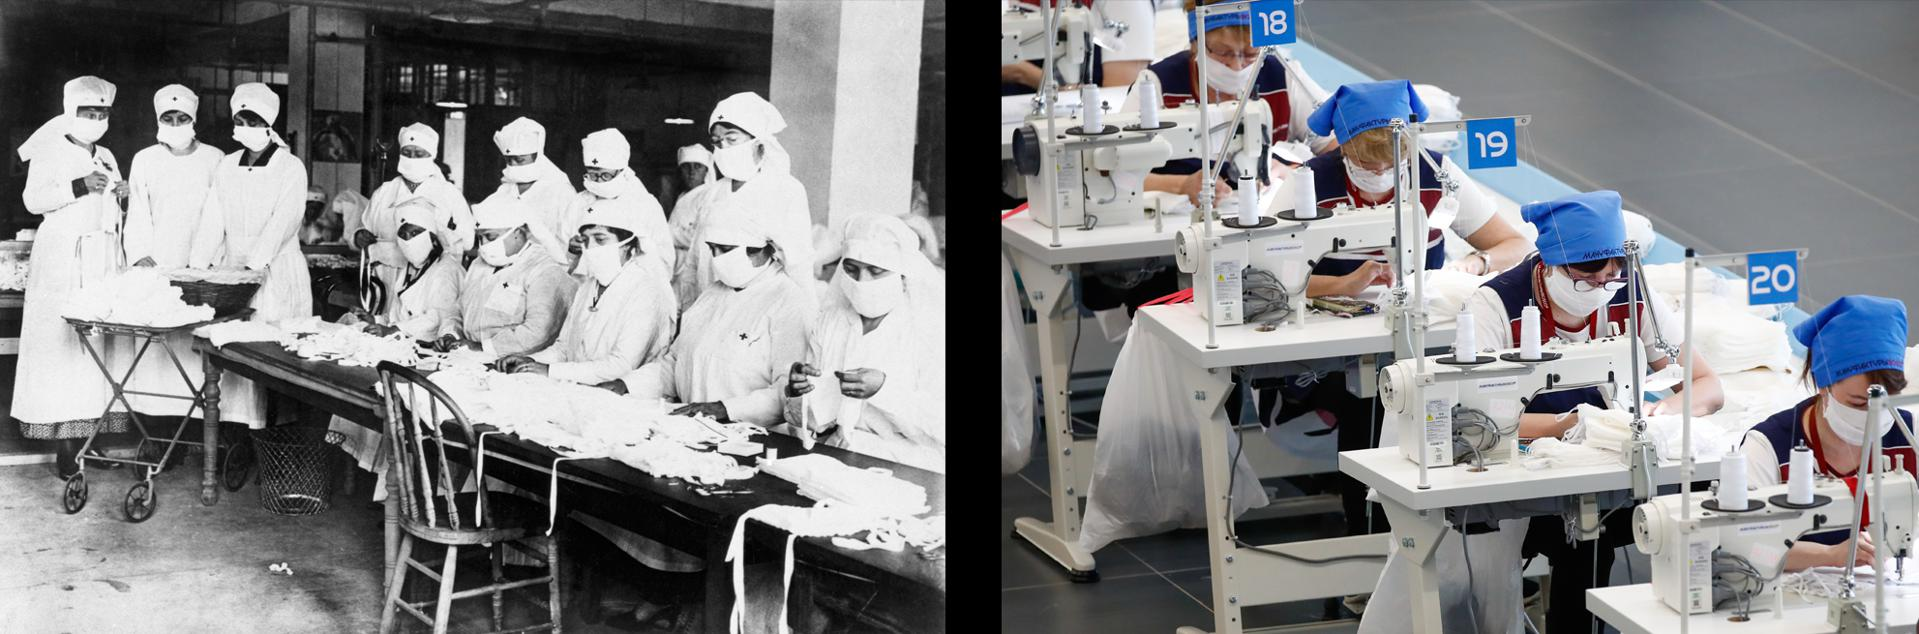 """Breathing Lessons: Both pandemics required armies of workers to produce face masks. Or as the New York Board of Health warned in 1918, """"Better to be ridiculous than dead."""""""